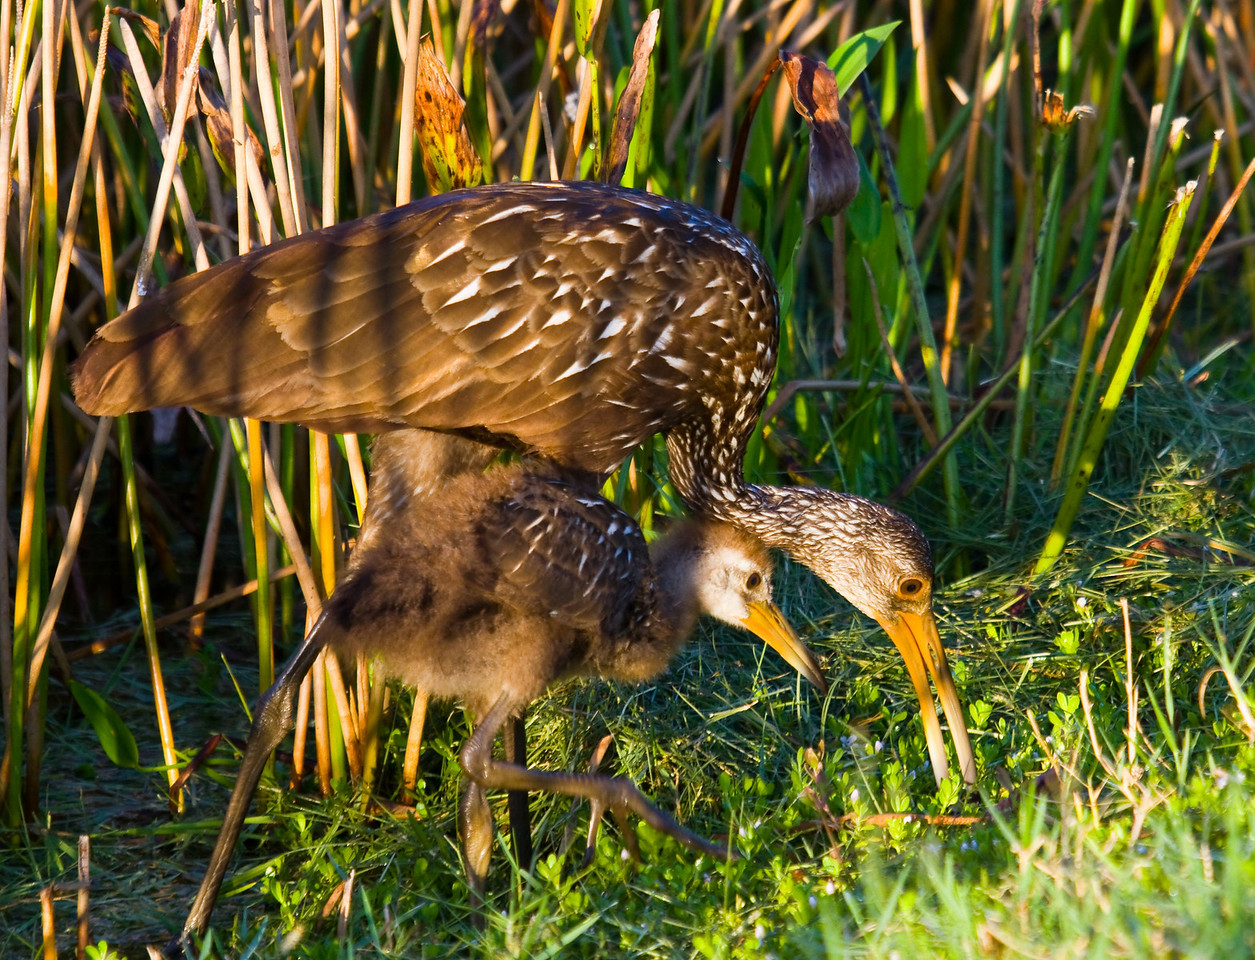 limpkin teacing baby to eat snails